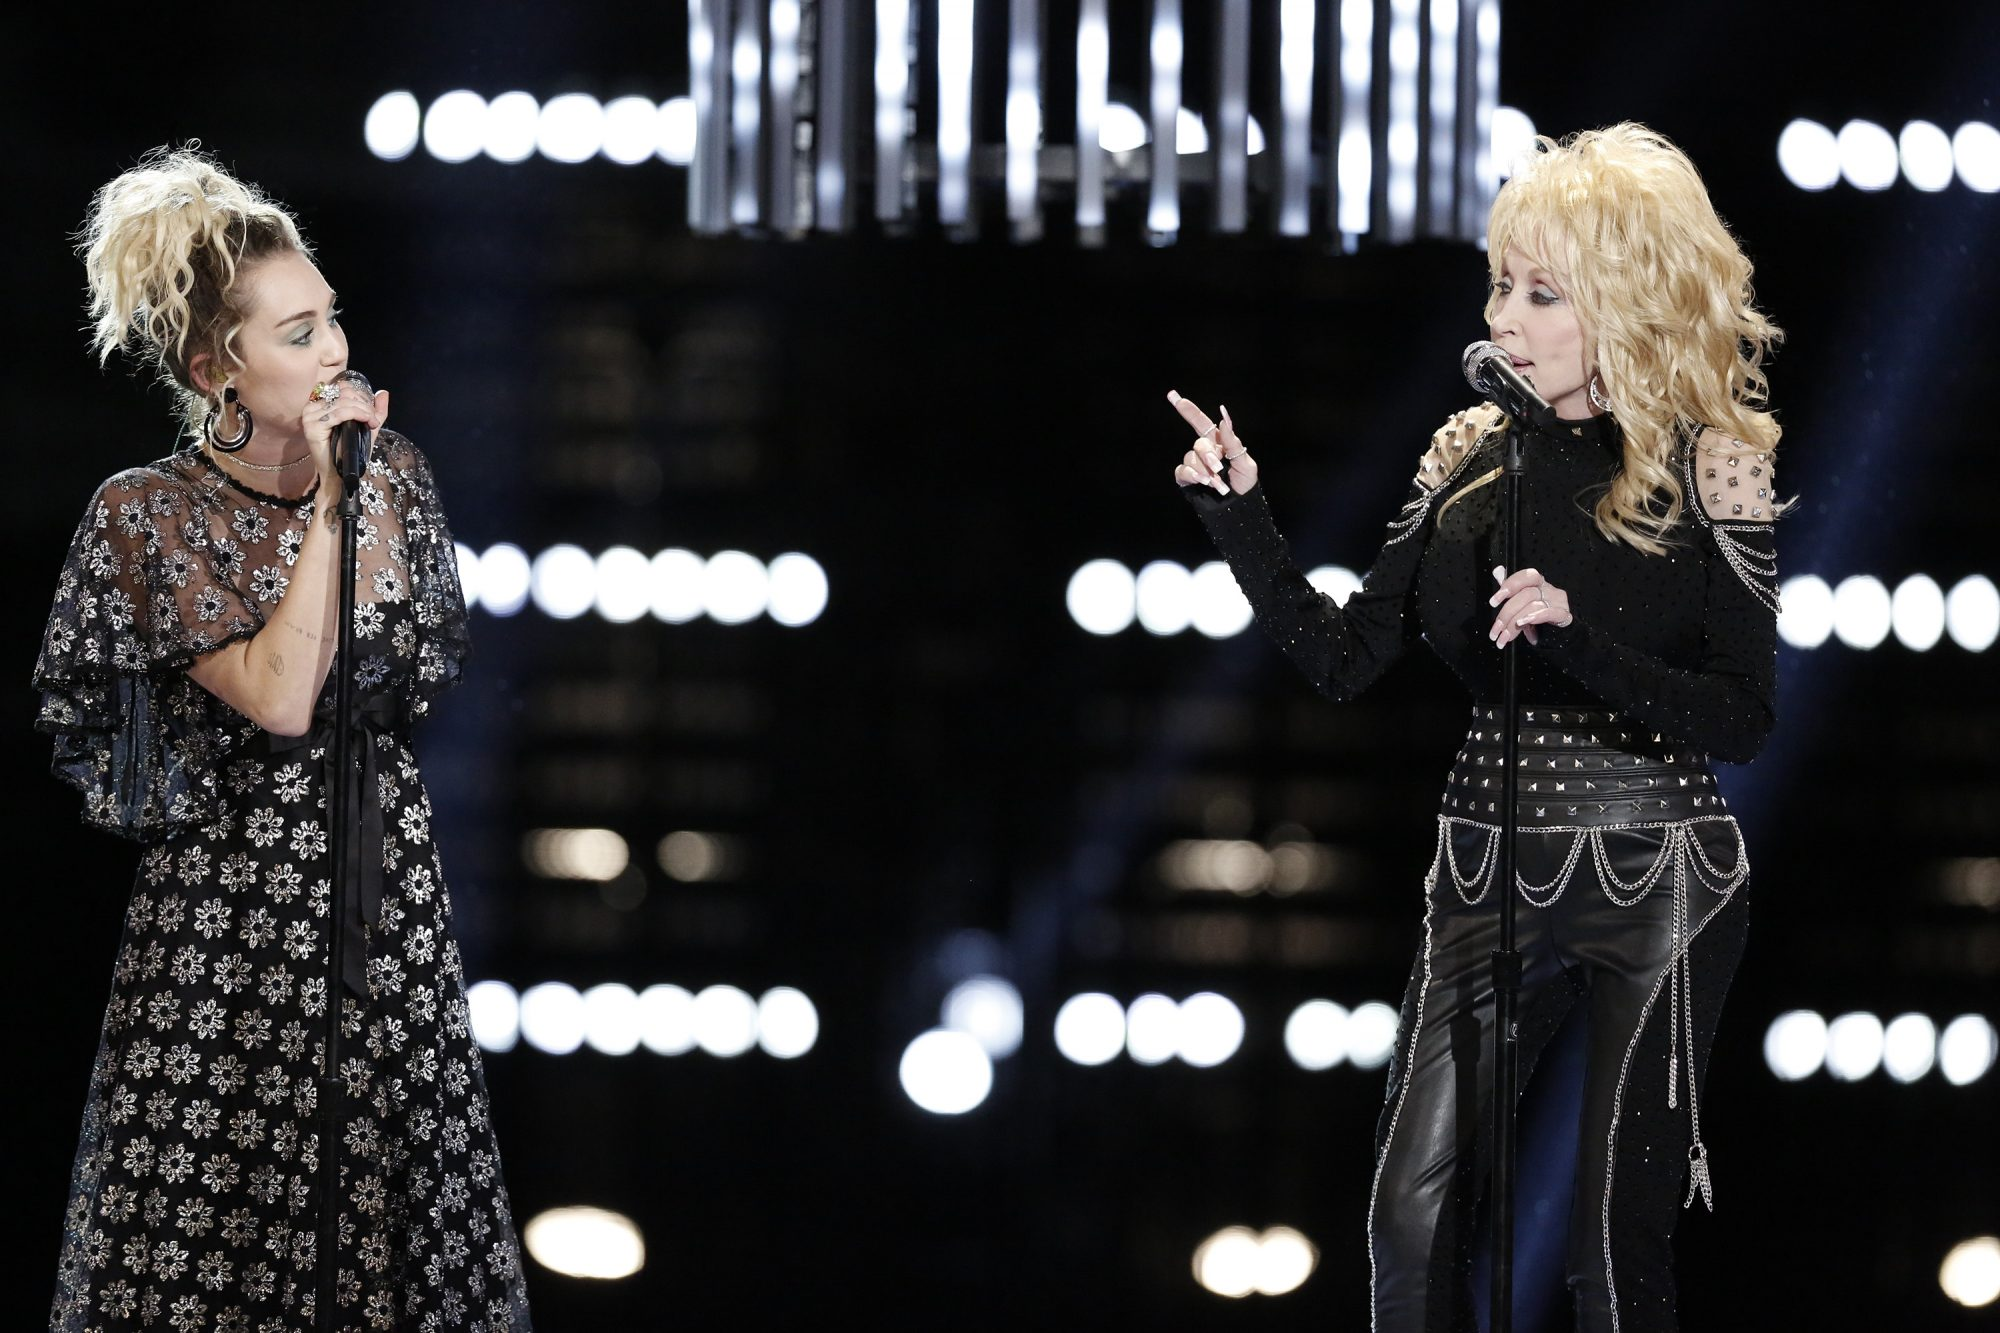 """Dolly Parton and Miley Cyrus singing """"Jolene"""" on The Voice"""